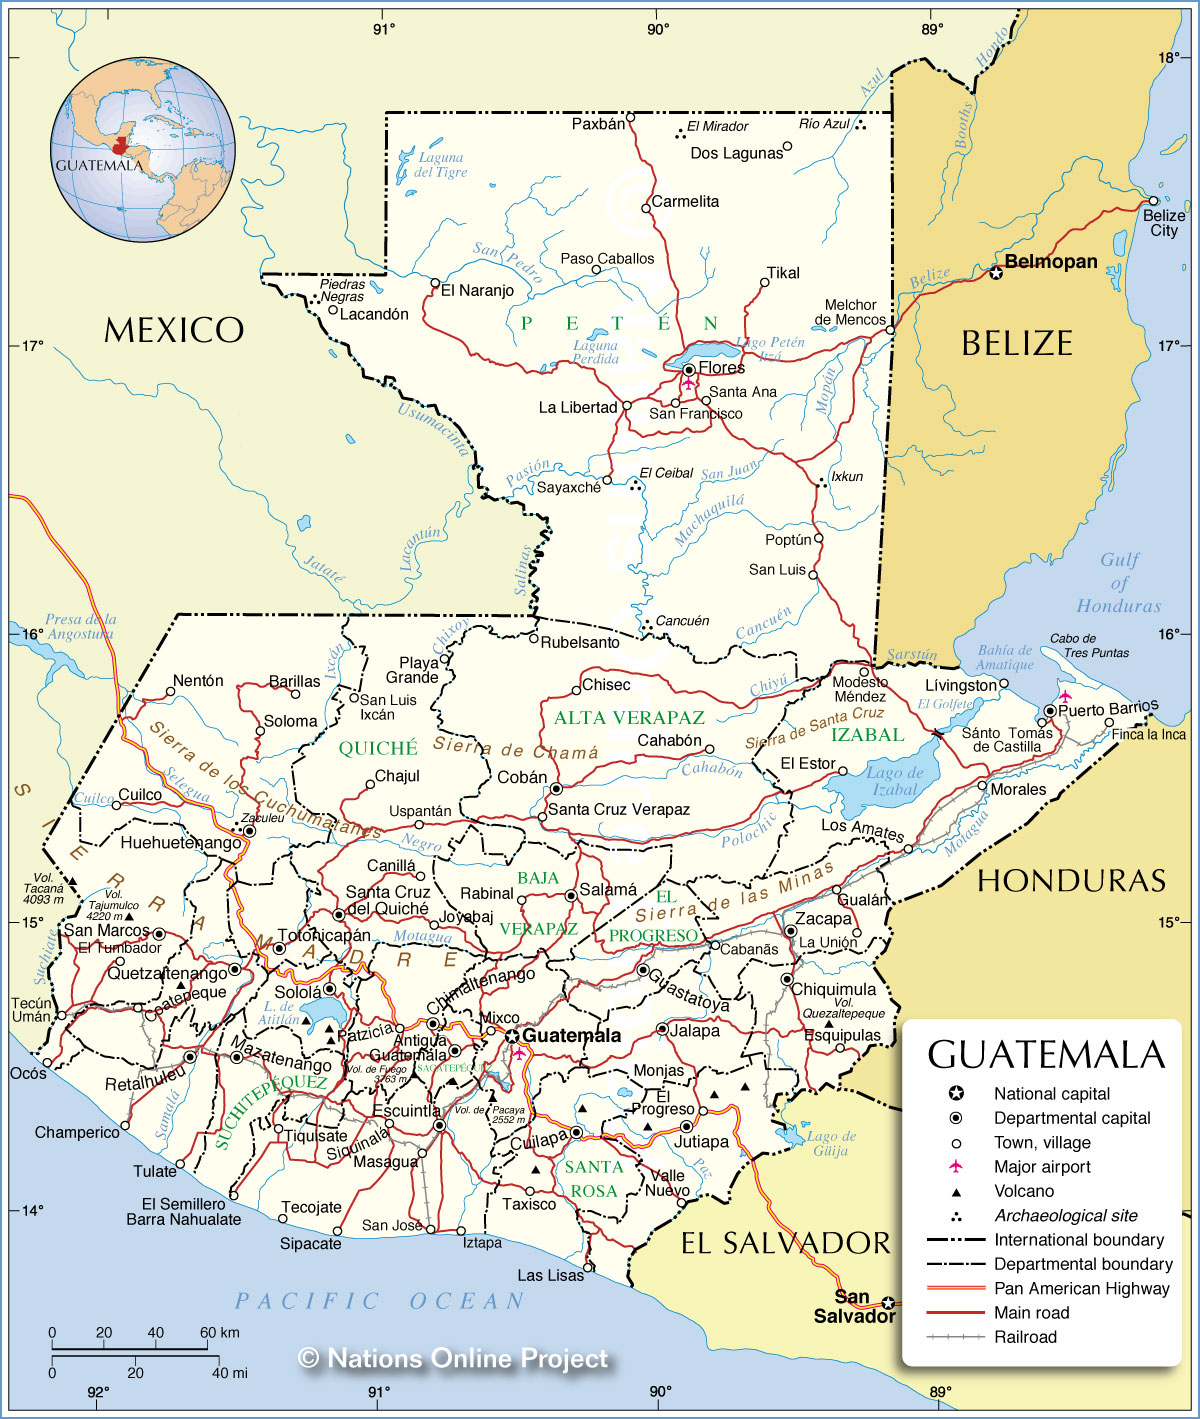 Administrative Map of Guatemala - Nations Online Project